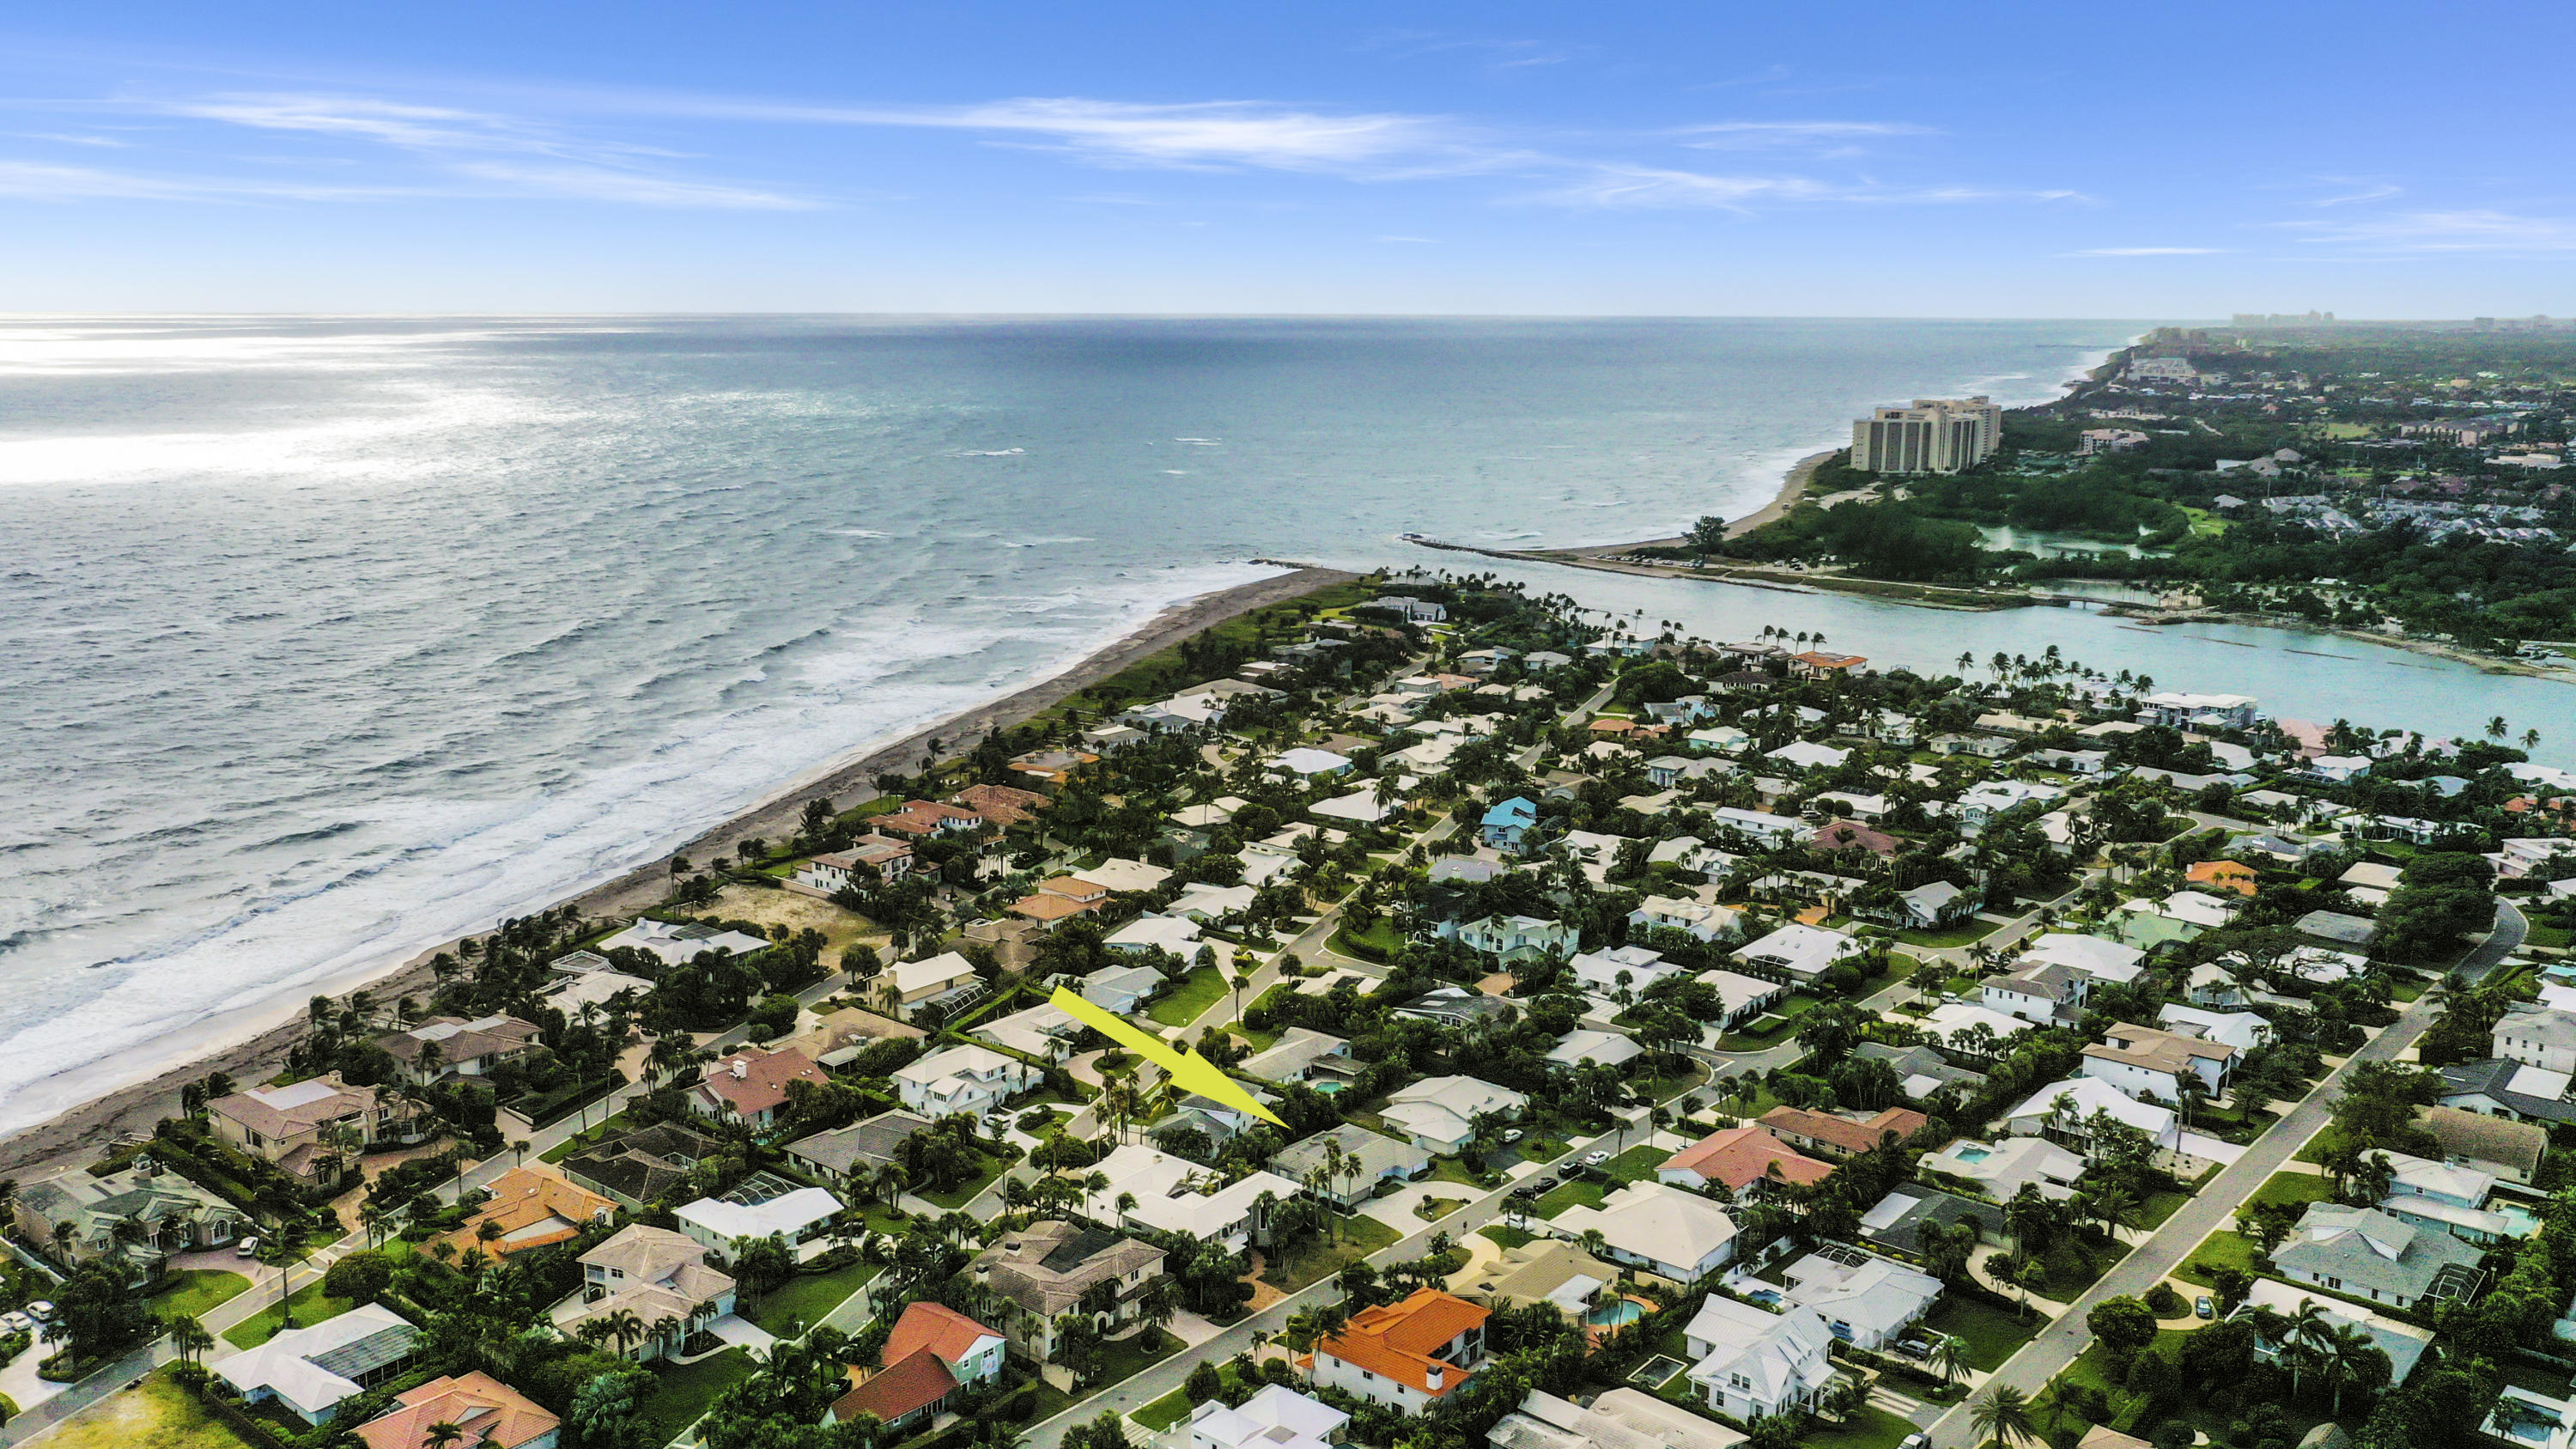 JUPITER INLET COLONY HOMES